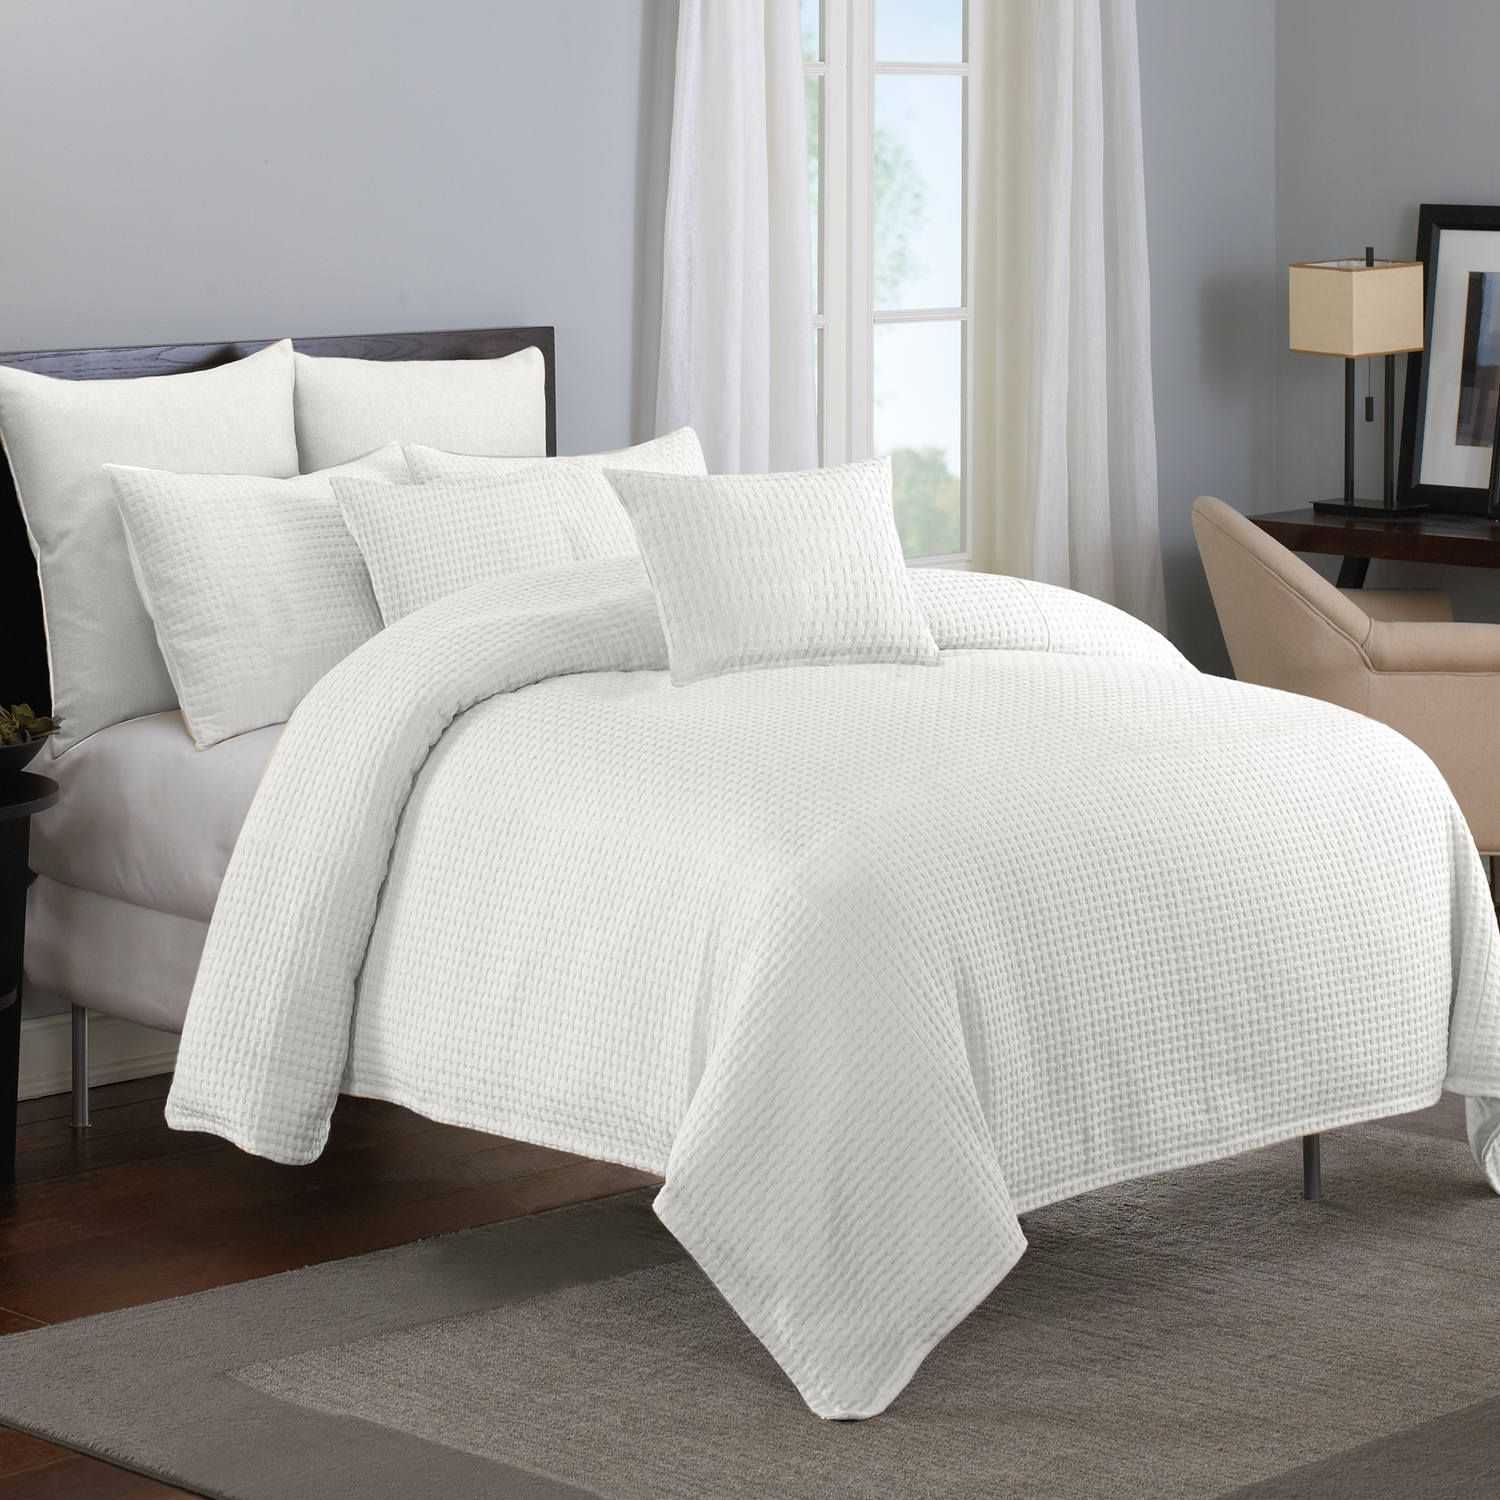 comforter goose reviews queen coast white luxury down best comforters pacific cover